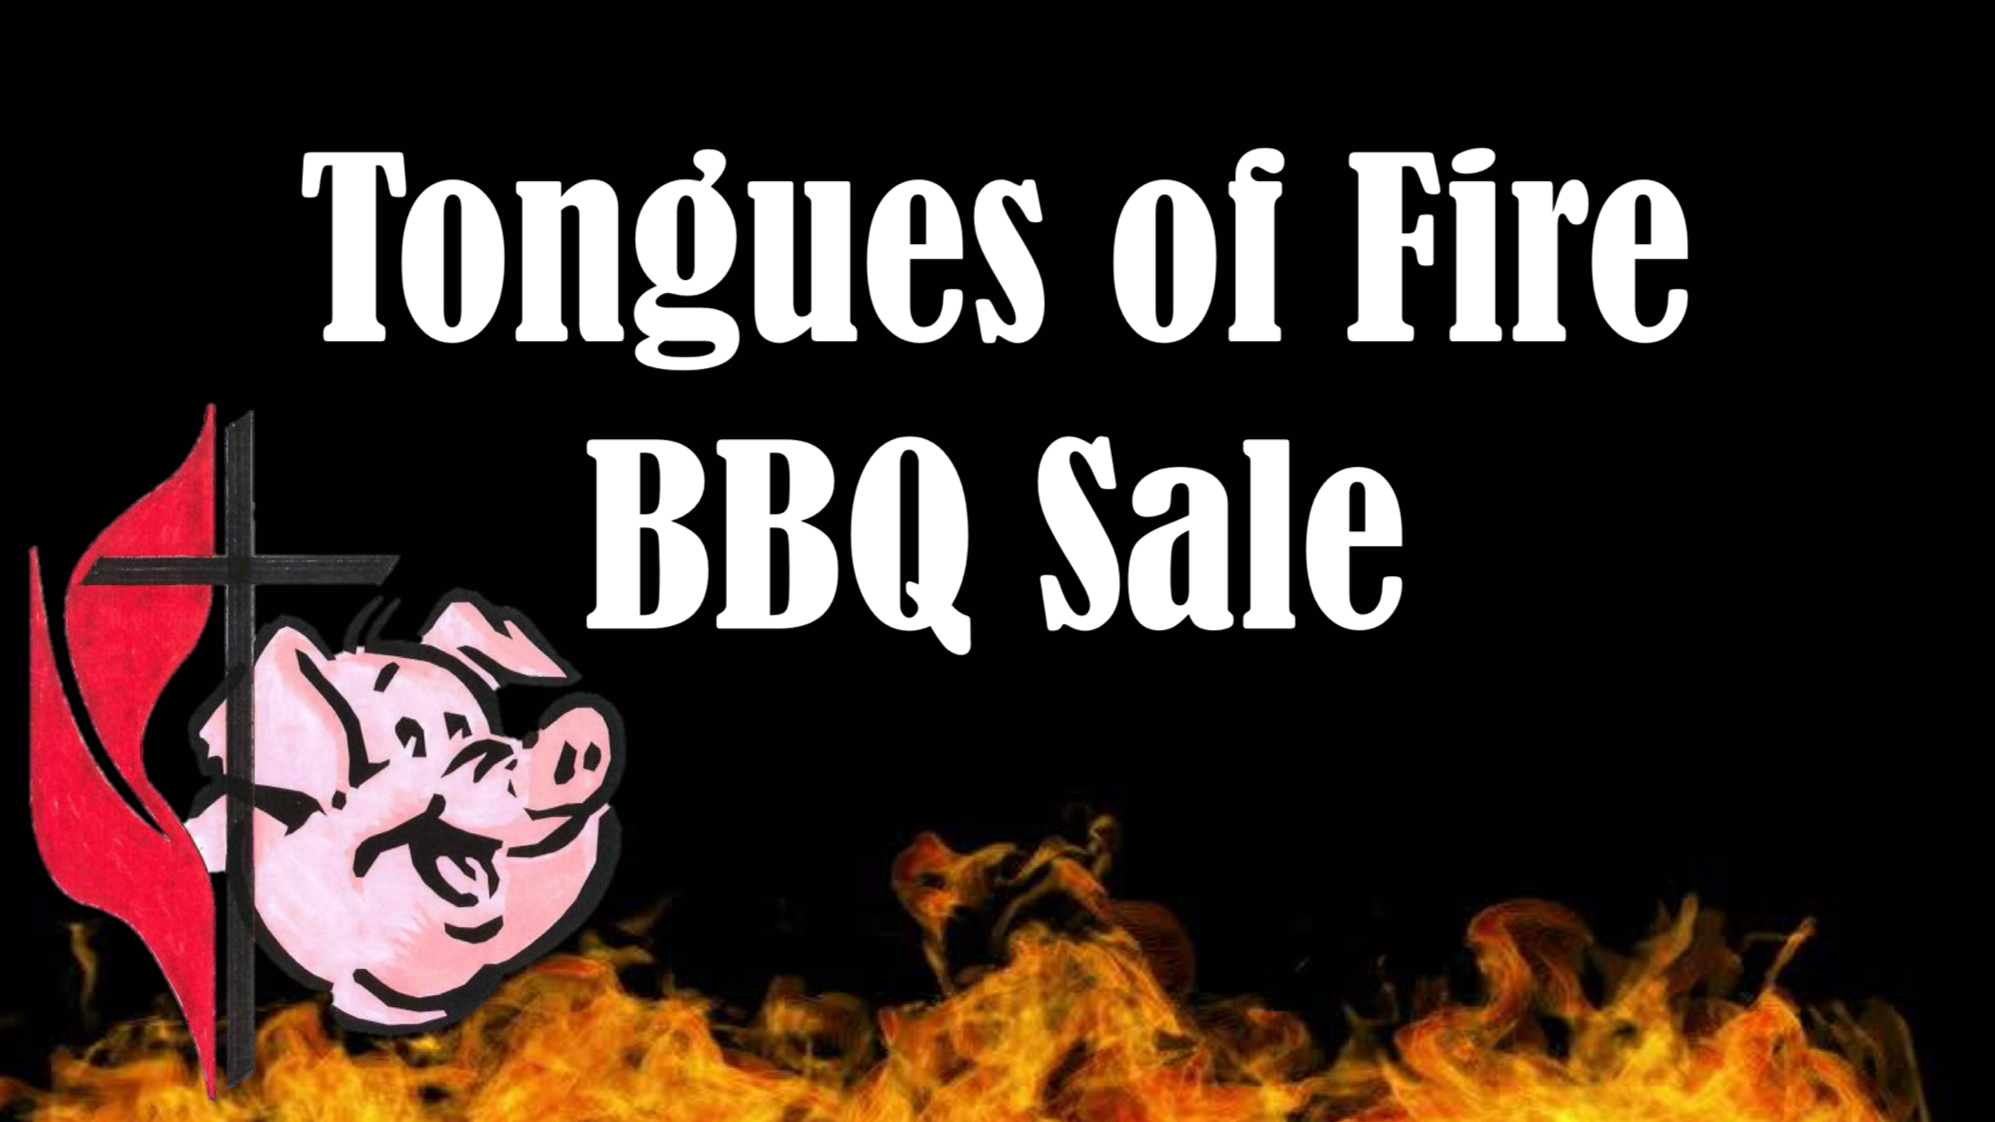 """Our very own DUMC Tongues of Fire BBQ will be on site for the festival.They will be featuring pulled pork & pulled chicken, pit beef and pit chicken. The teams mission is to """"Share the Gospel one Bite at a Time!"""""""